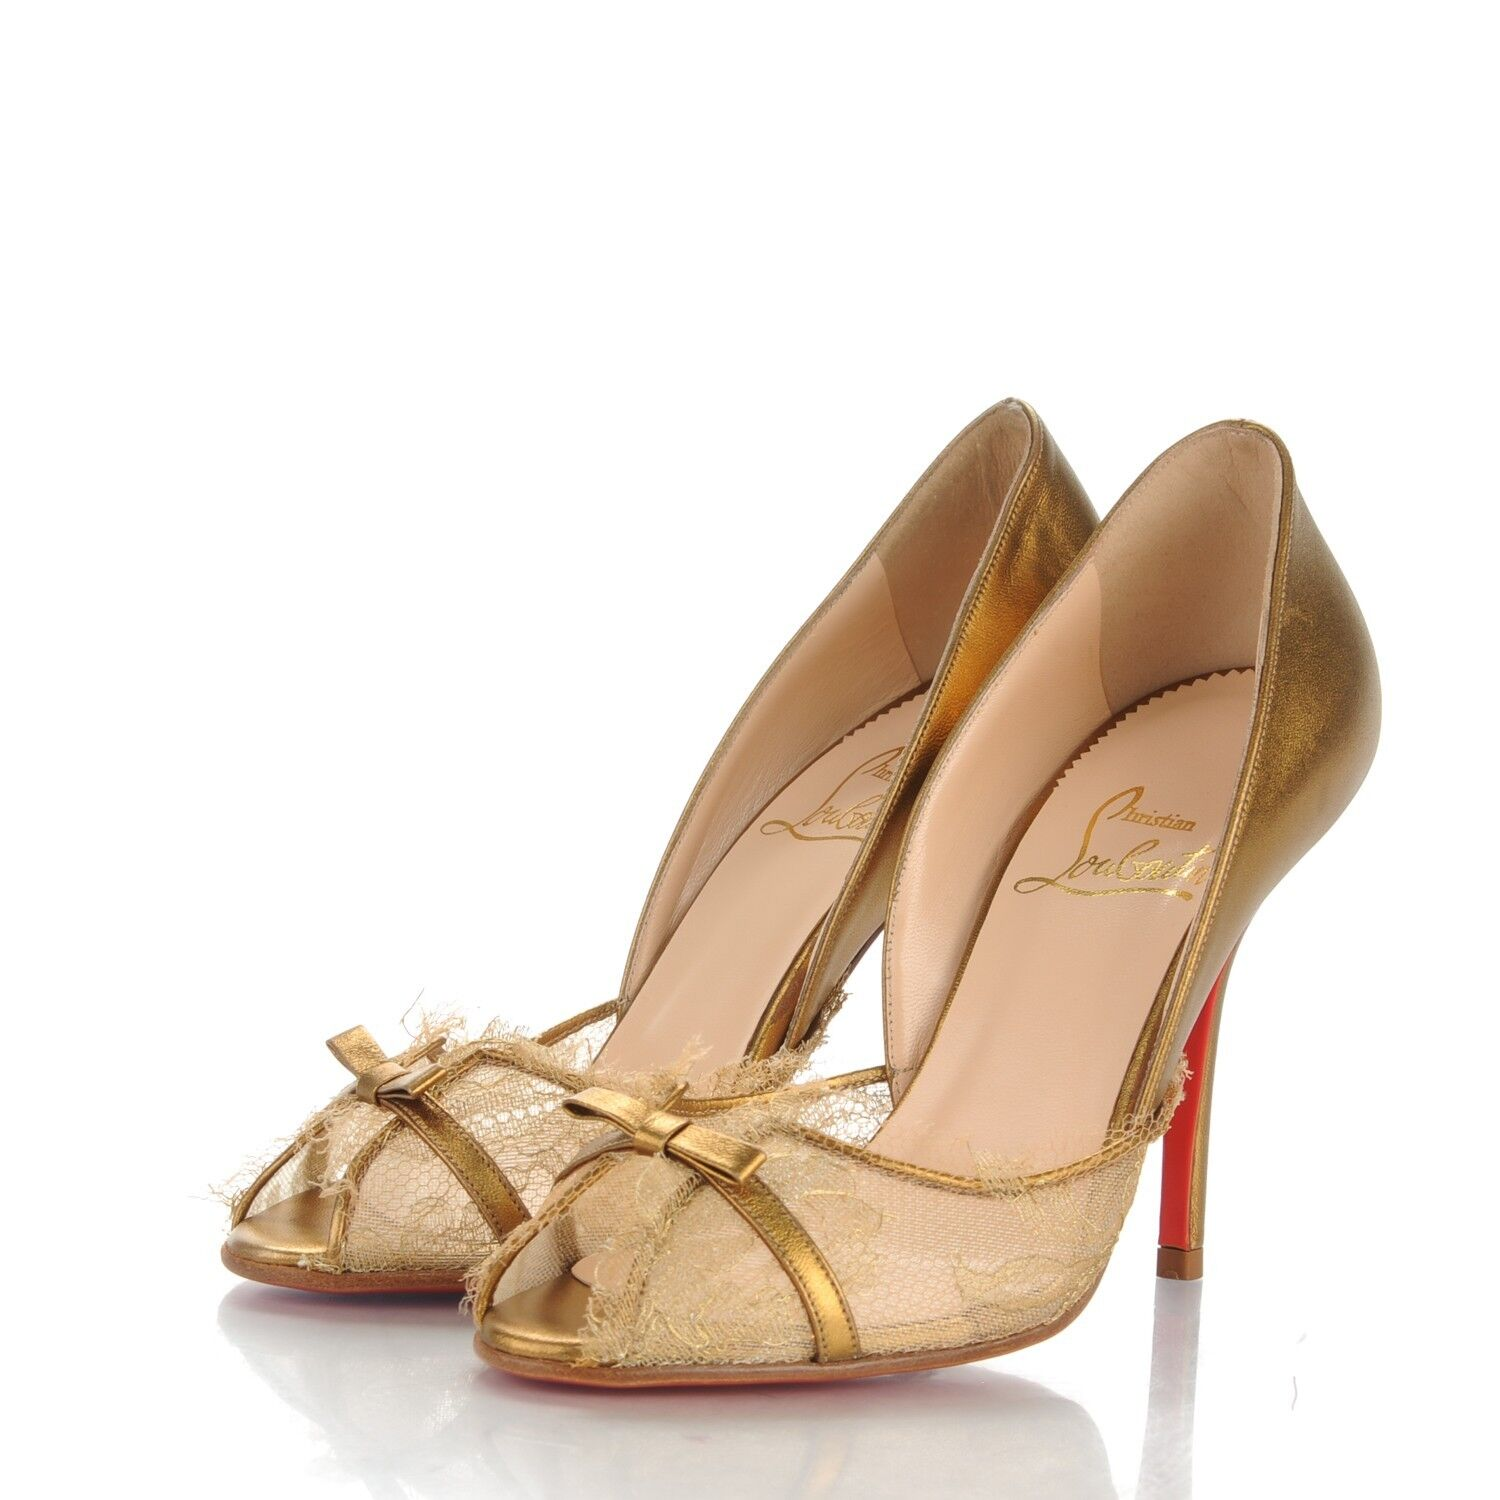 825 NEW Christian Louboutin ALEXANDRA Lace gold Leather Bow Peep Toe shoes 40.5